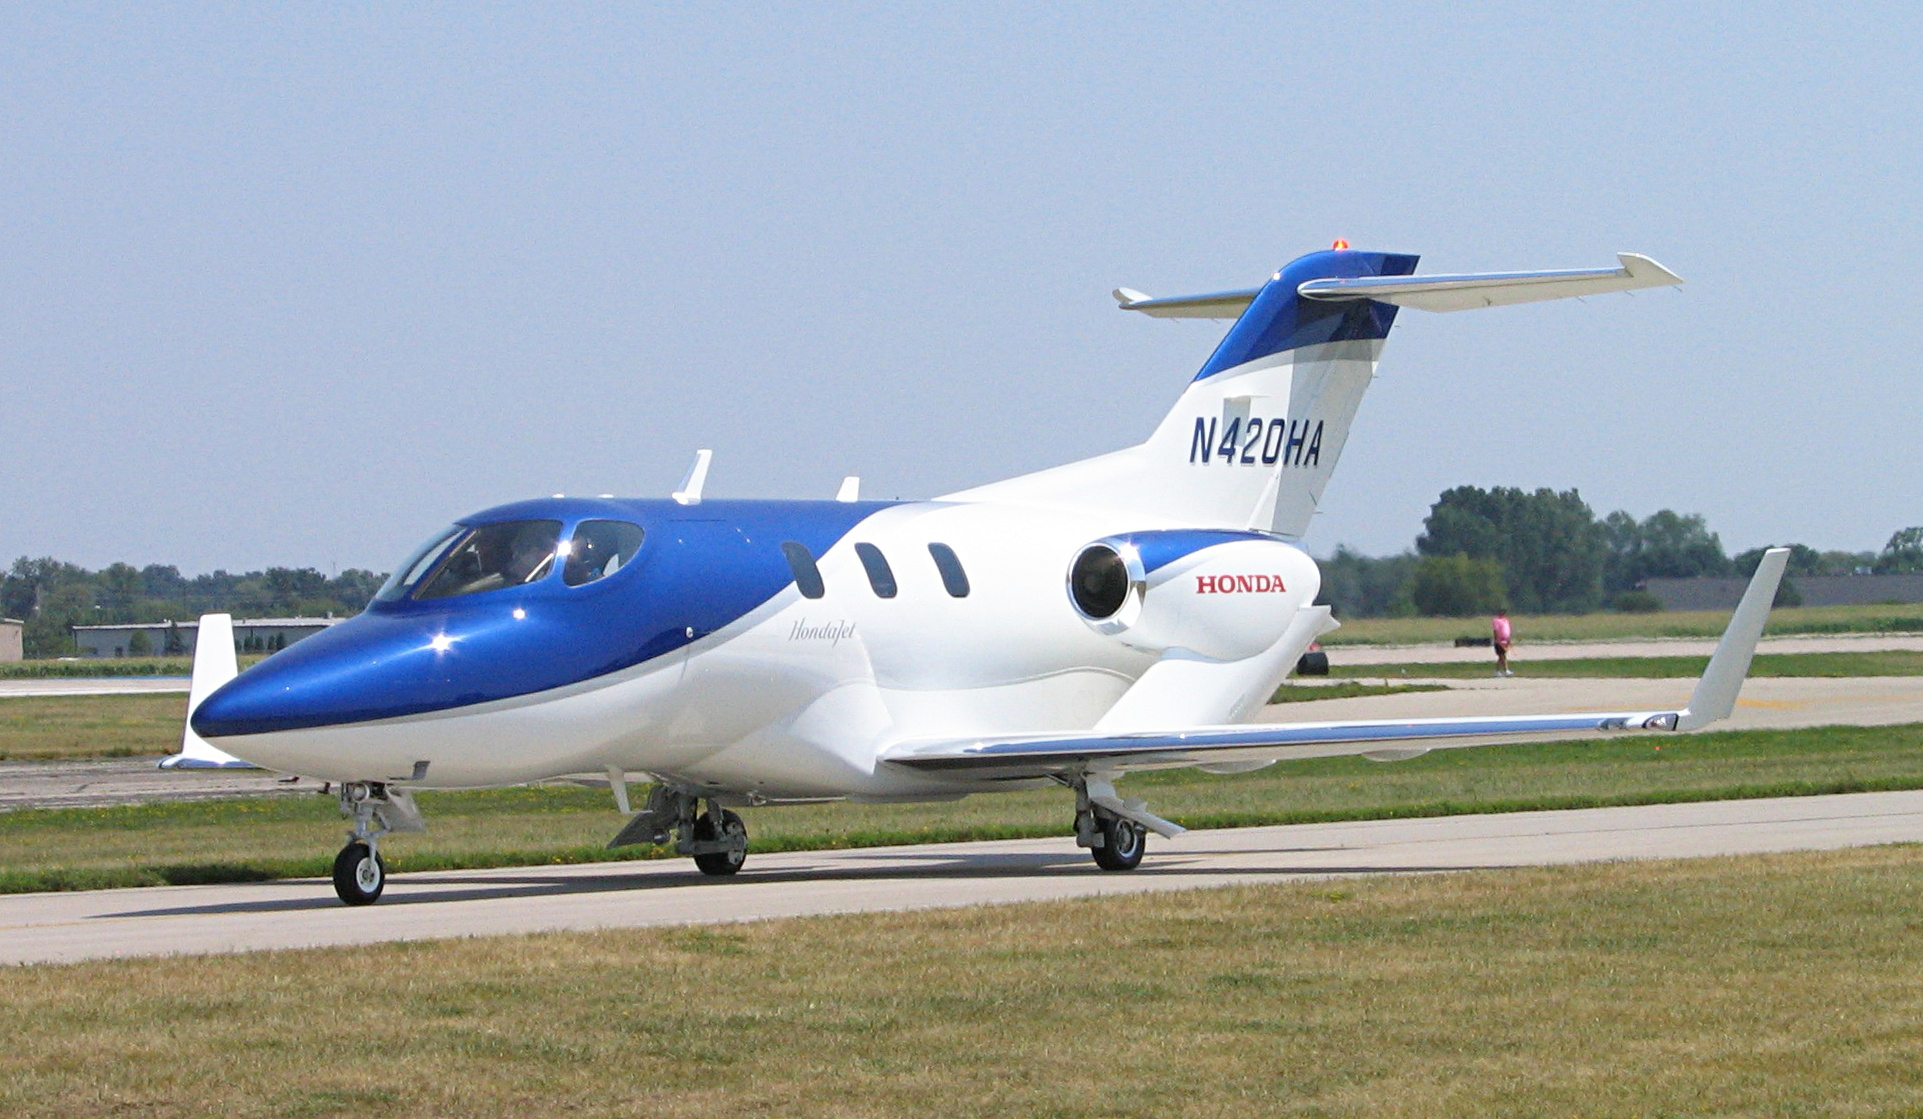 filehondajet jpg wikimedia commons